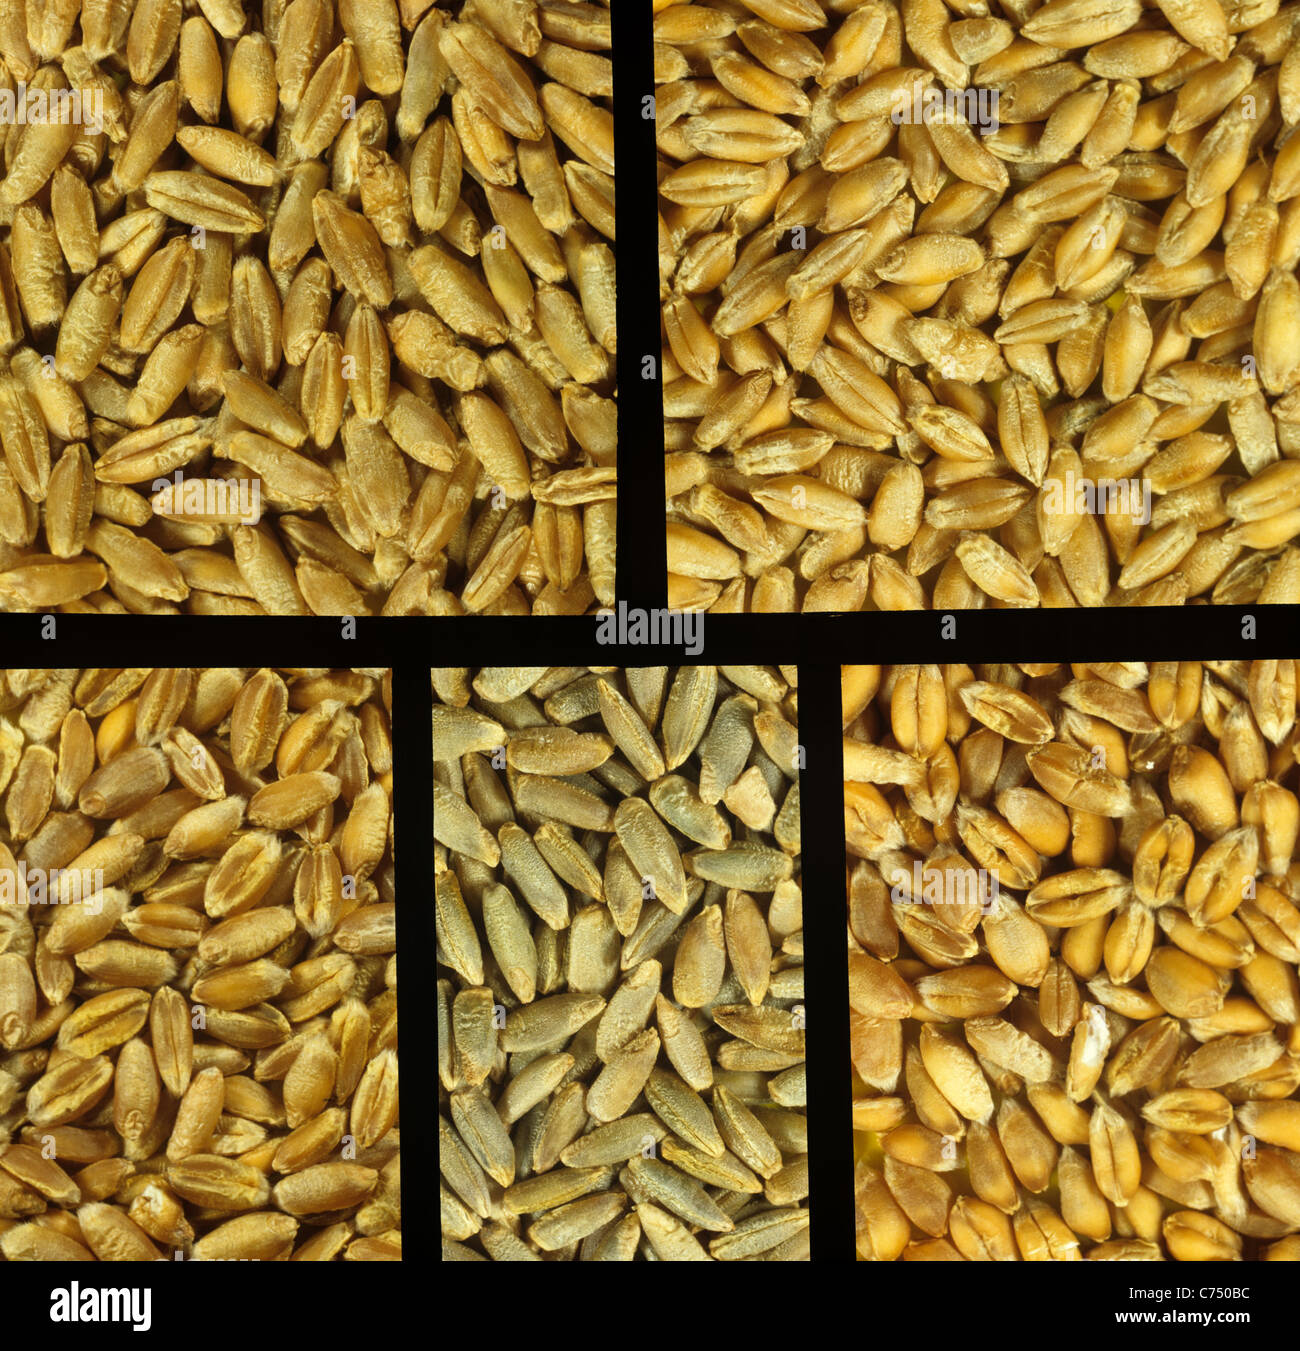 Triticale, rye and wheat grains - Stock Image